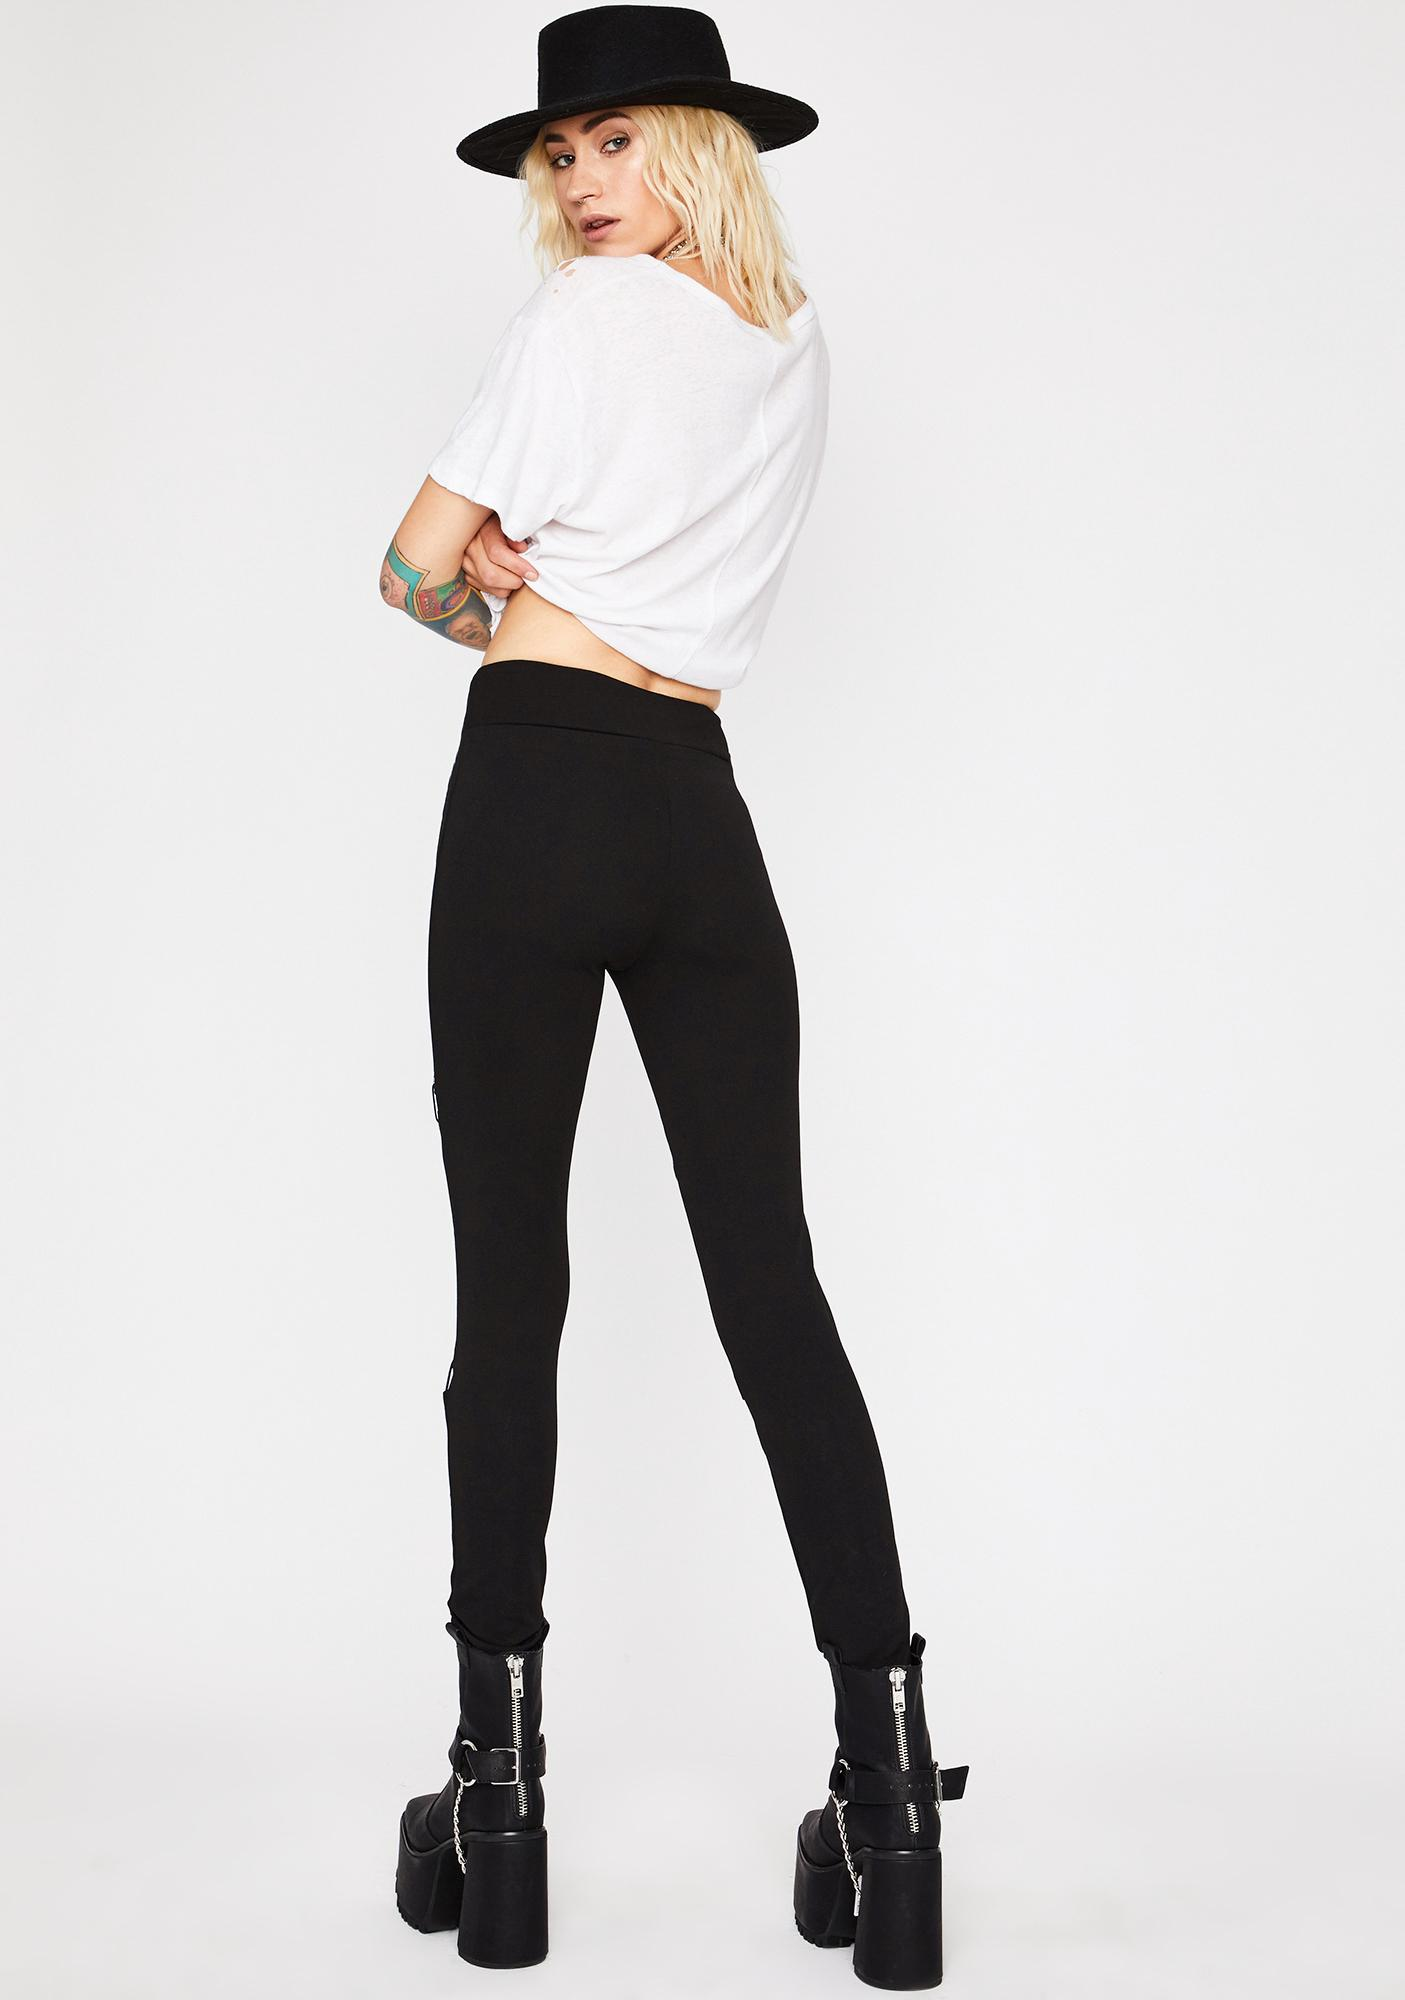 By The Code Lace-Up Leggings